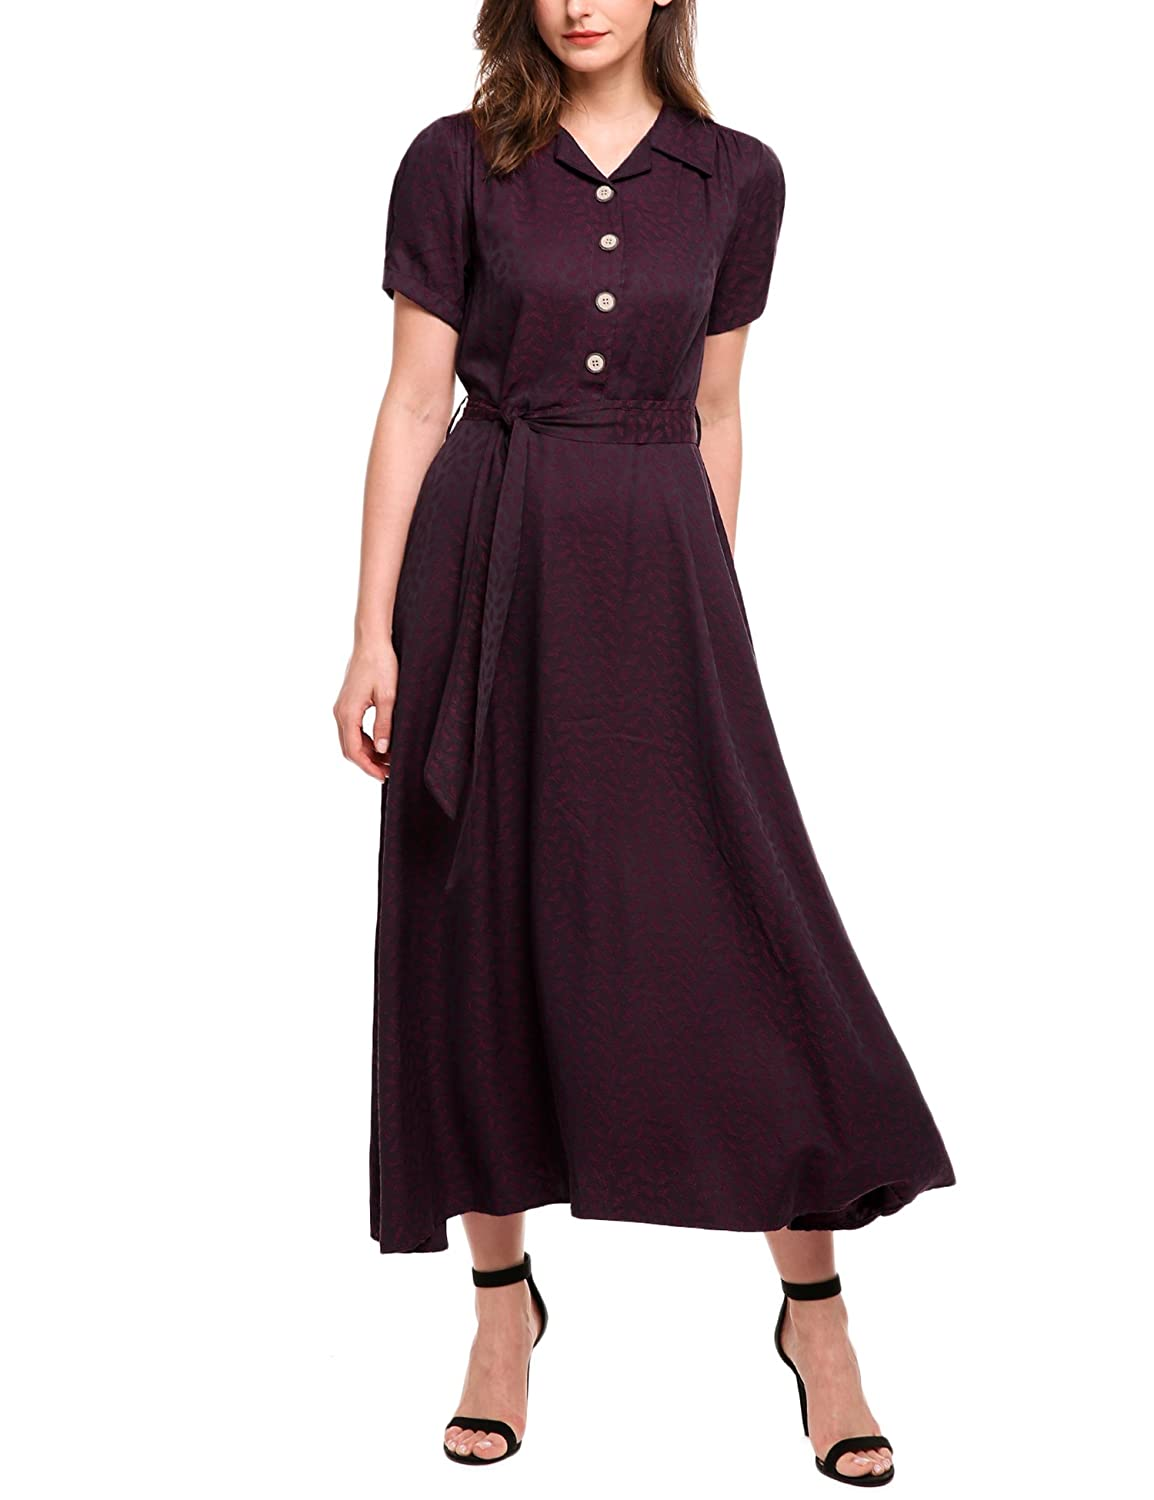 Vintage Shirtwaist Dress History ACEVOG Women Vintage Style Turn Down Collar Short Sleeve High Waist Maxi Swing Dress with Belt $38.99 AT vintagedancer.com